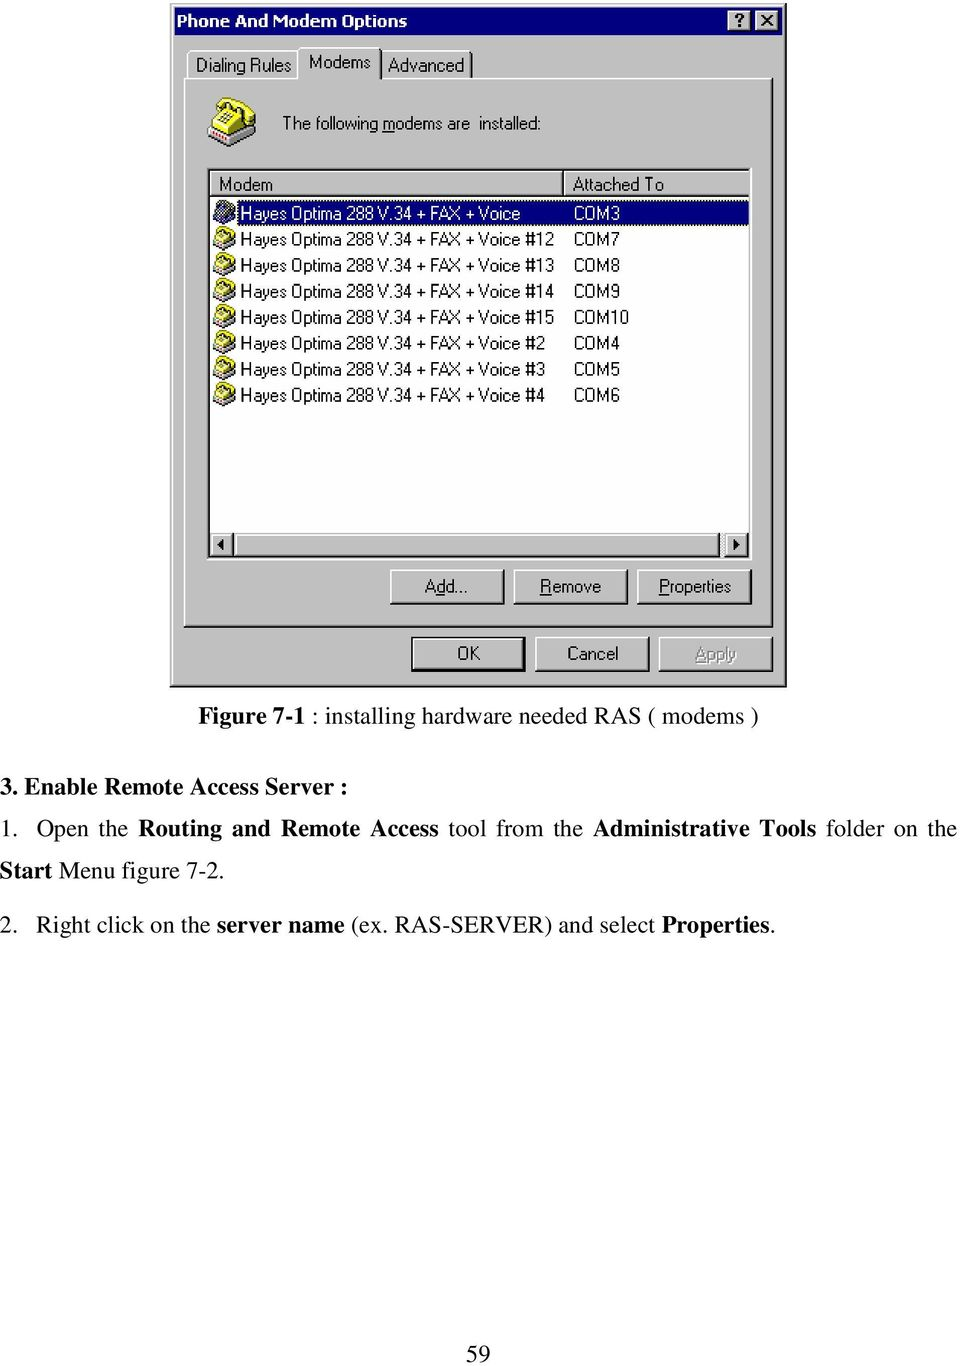 Open the Routing and Remote Access tool from the Administrative